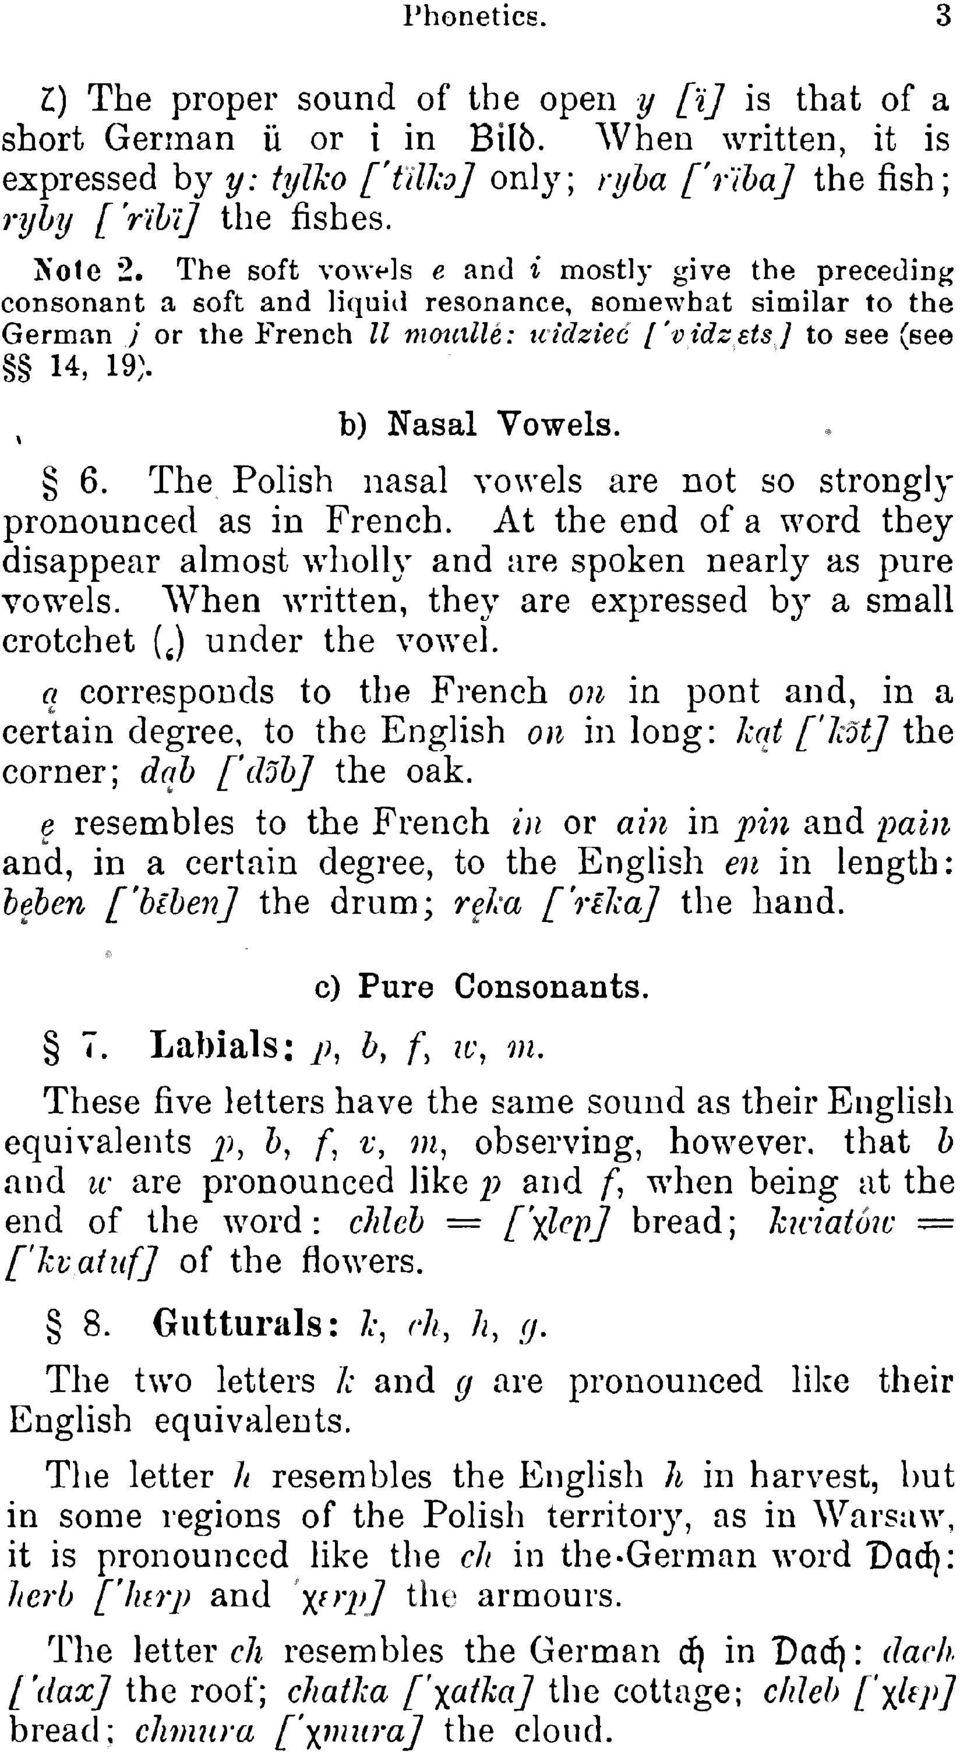 The soft vowels e and i mostly give the preceding consonant a soft and liquid resonance, somewhat similar to the German } or the French 11 mouille: uidziec ['vidzets] to see (see 14, 19;.